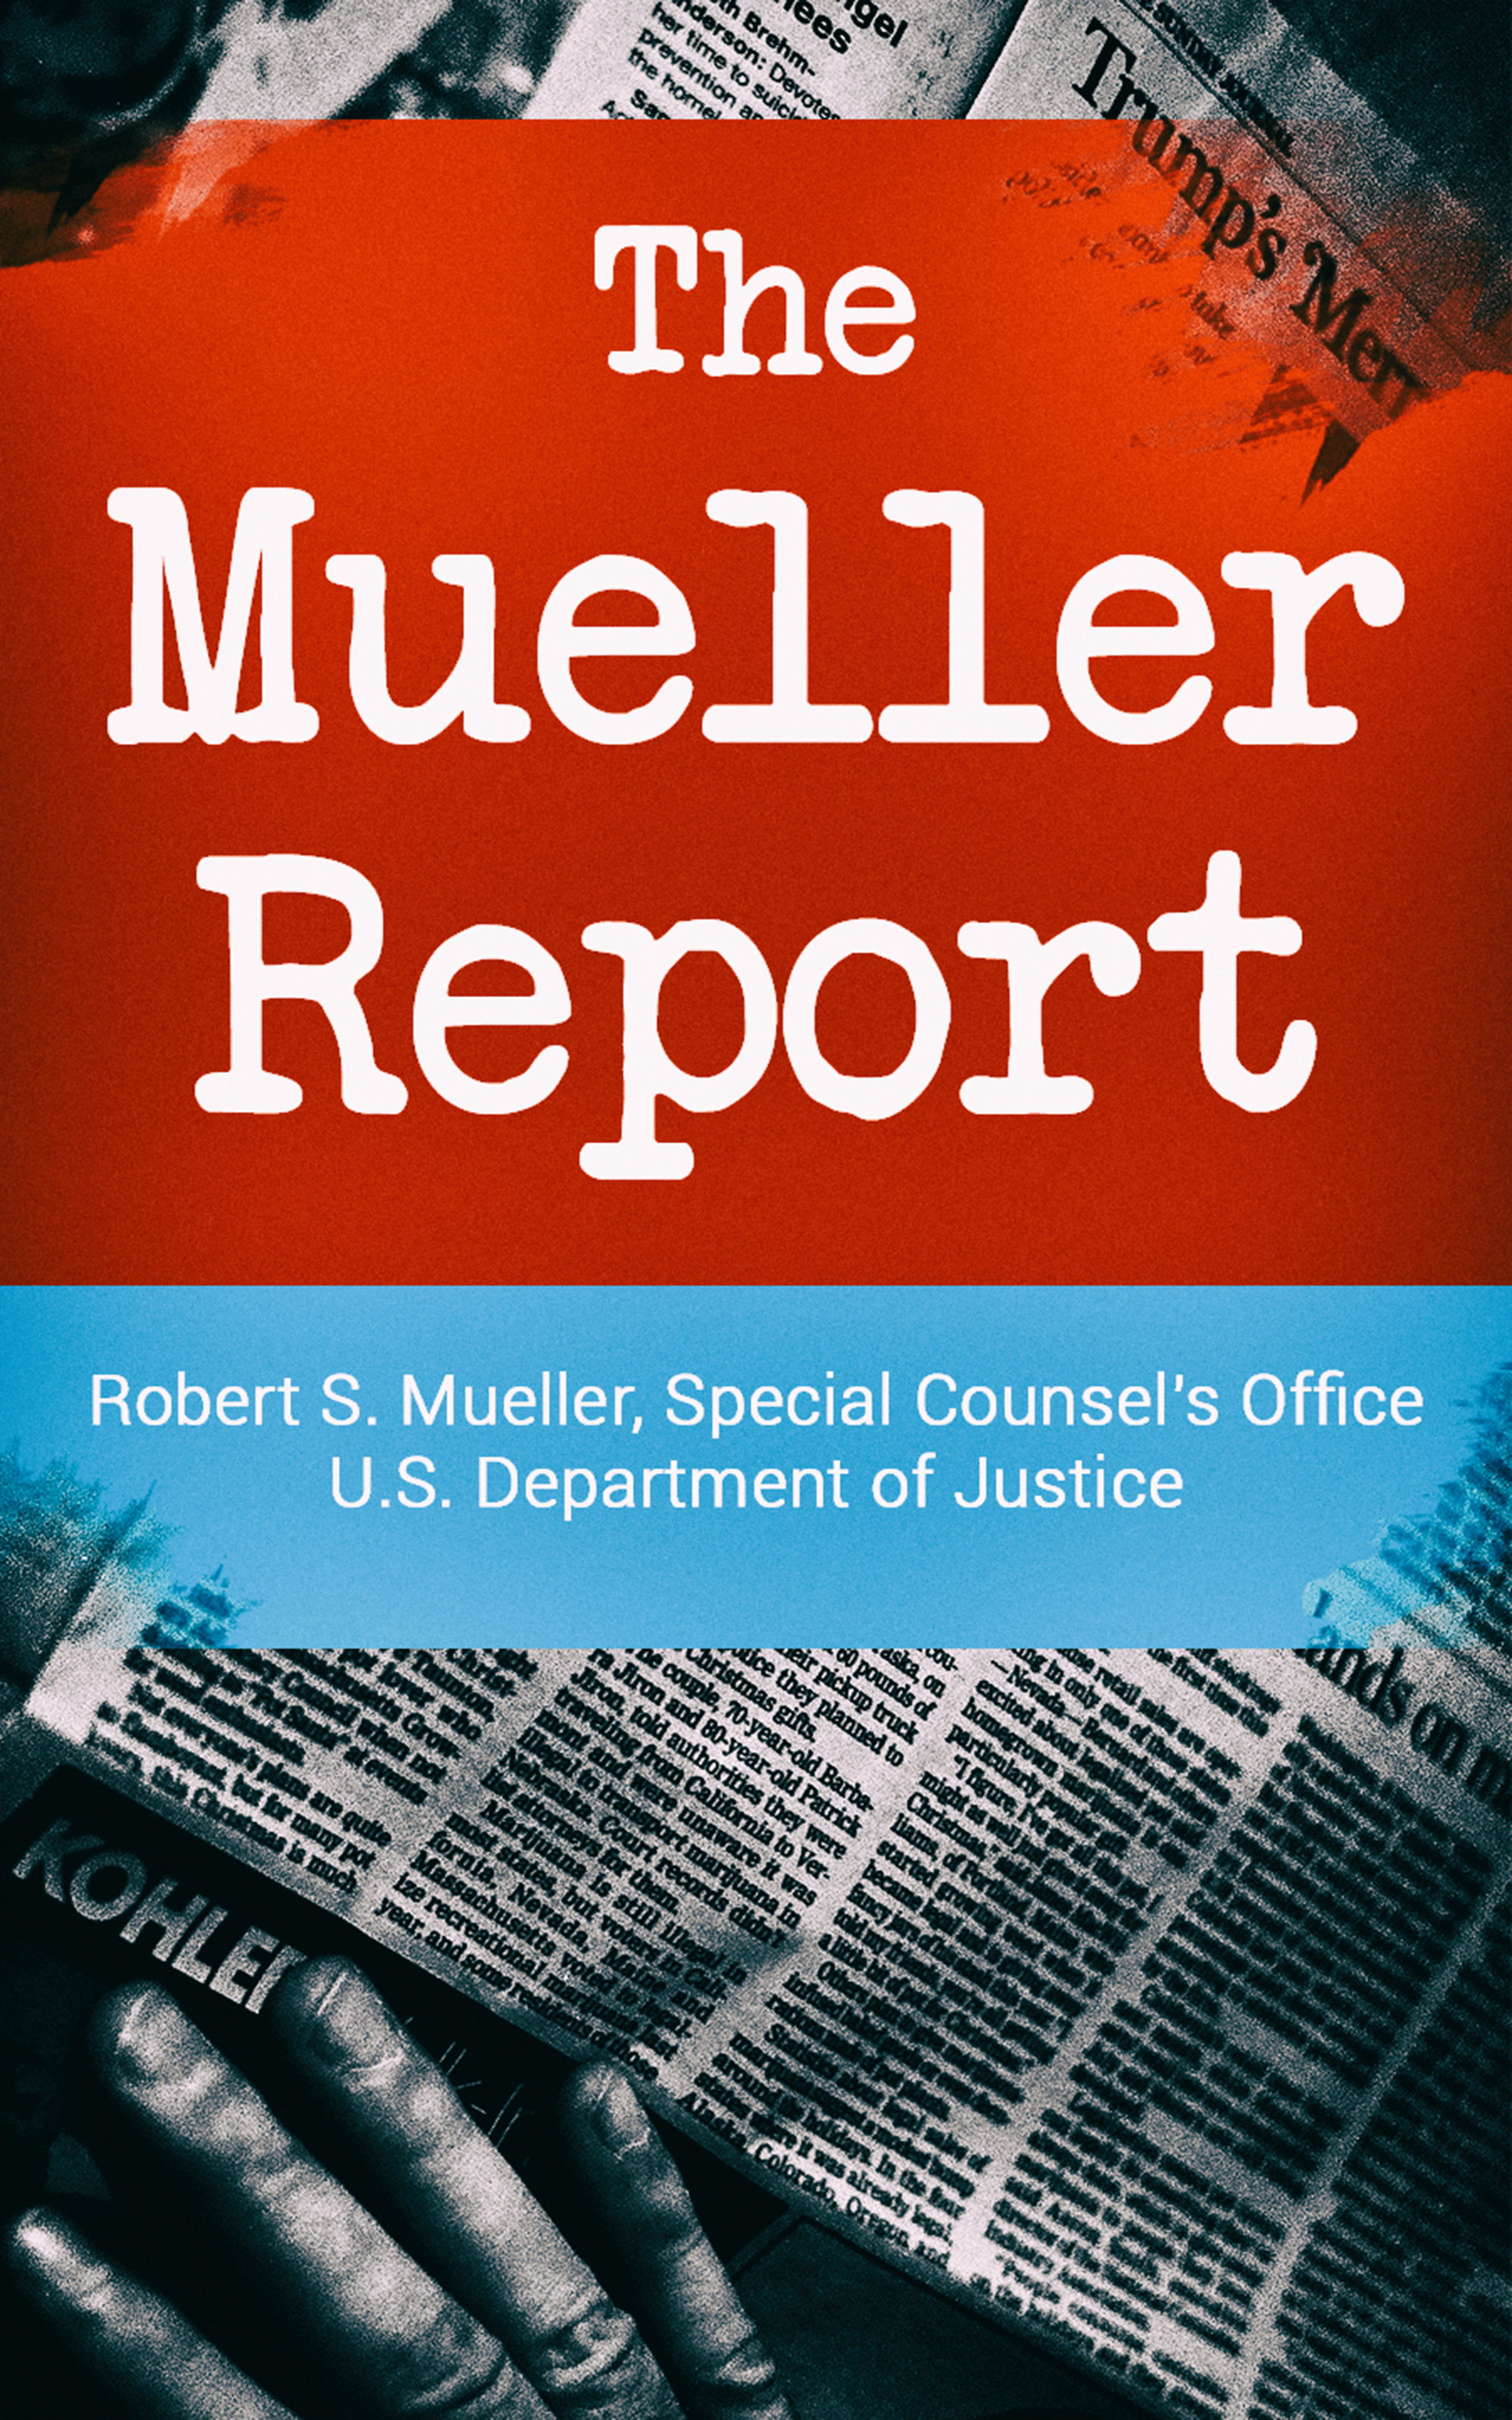 Robert S. Mueller The Mueller Report: Report on the Investigation into Russian Interference in the 2016 Presidential Election